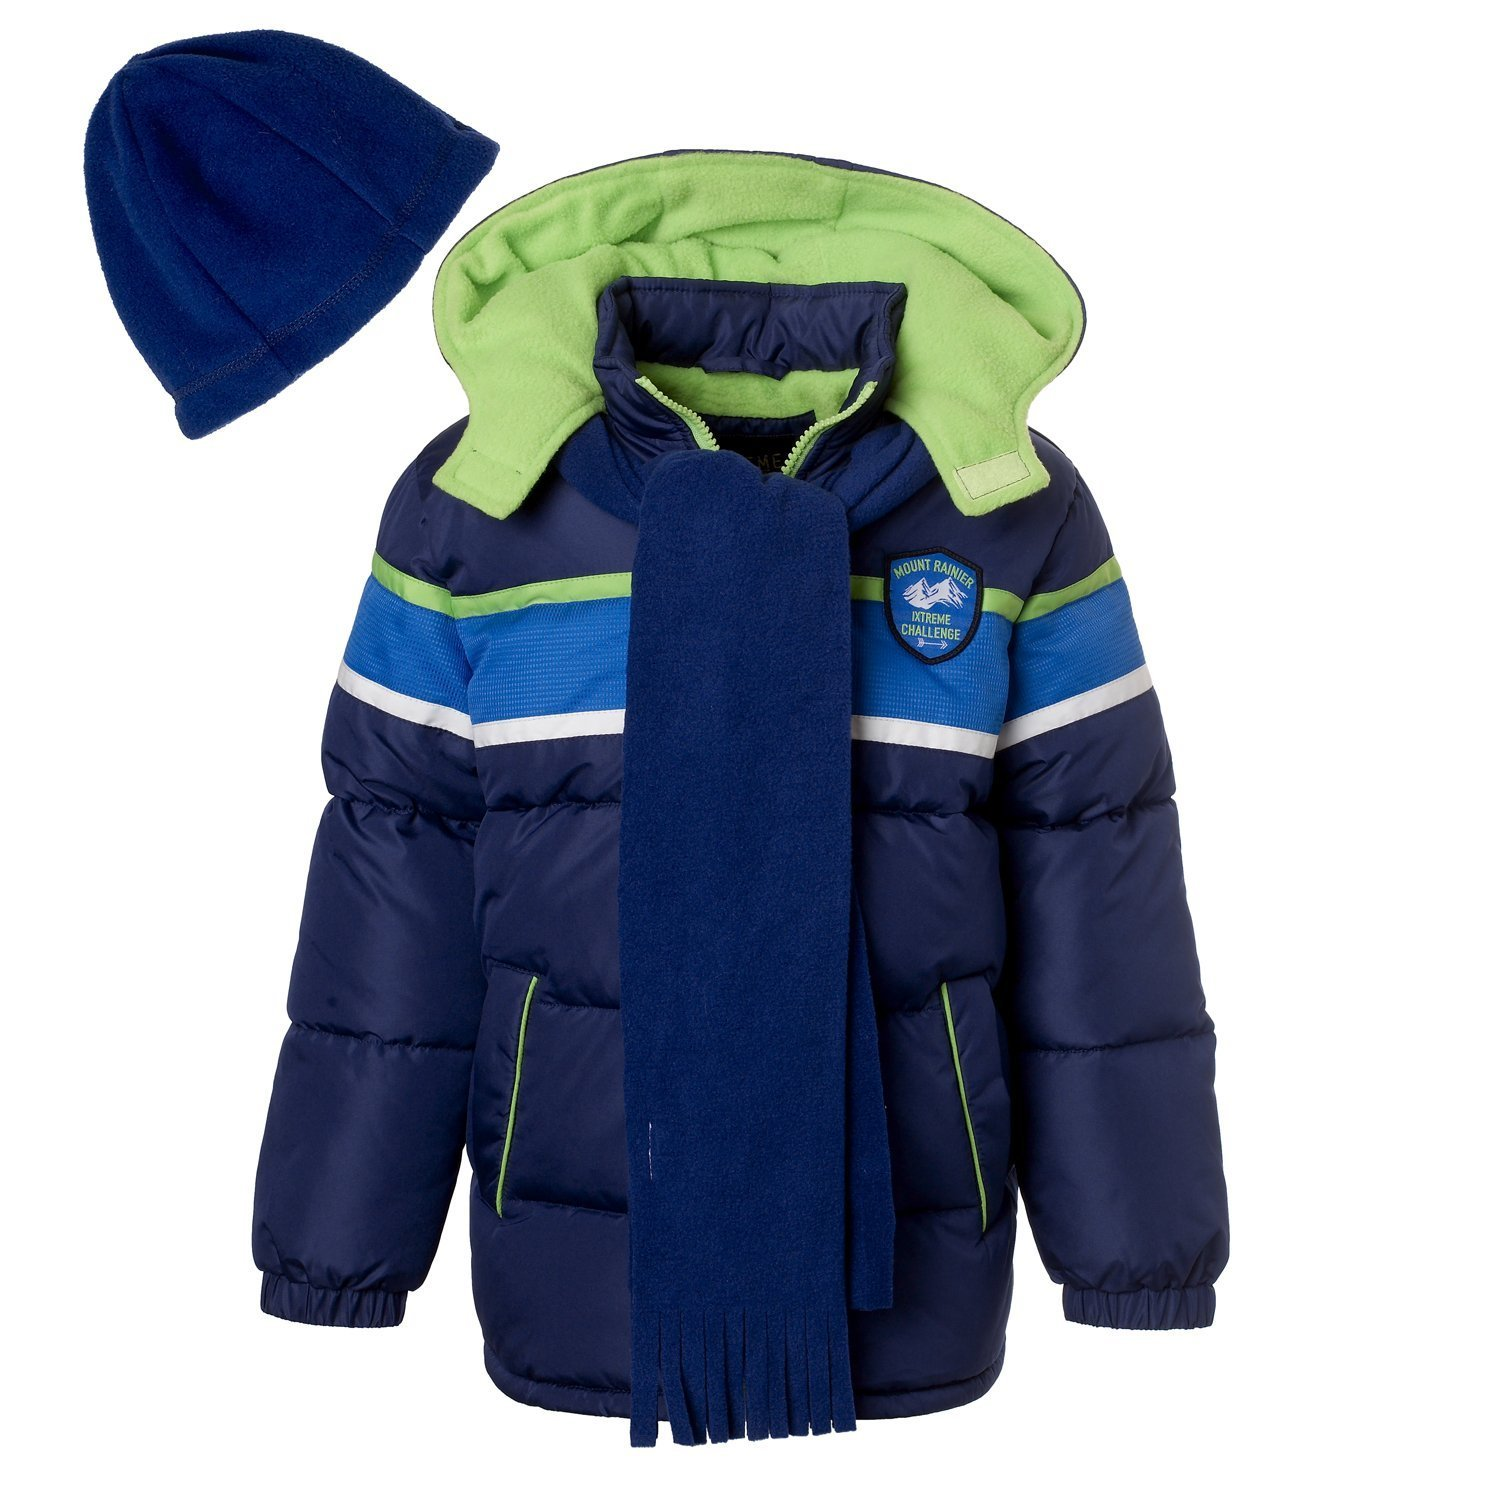 iXtreme Little Boys Colorblock Print Puffer Jacket Set with Hat & Scarf, Navy, 3T